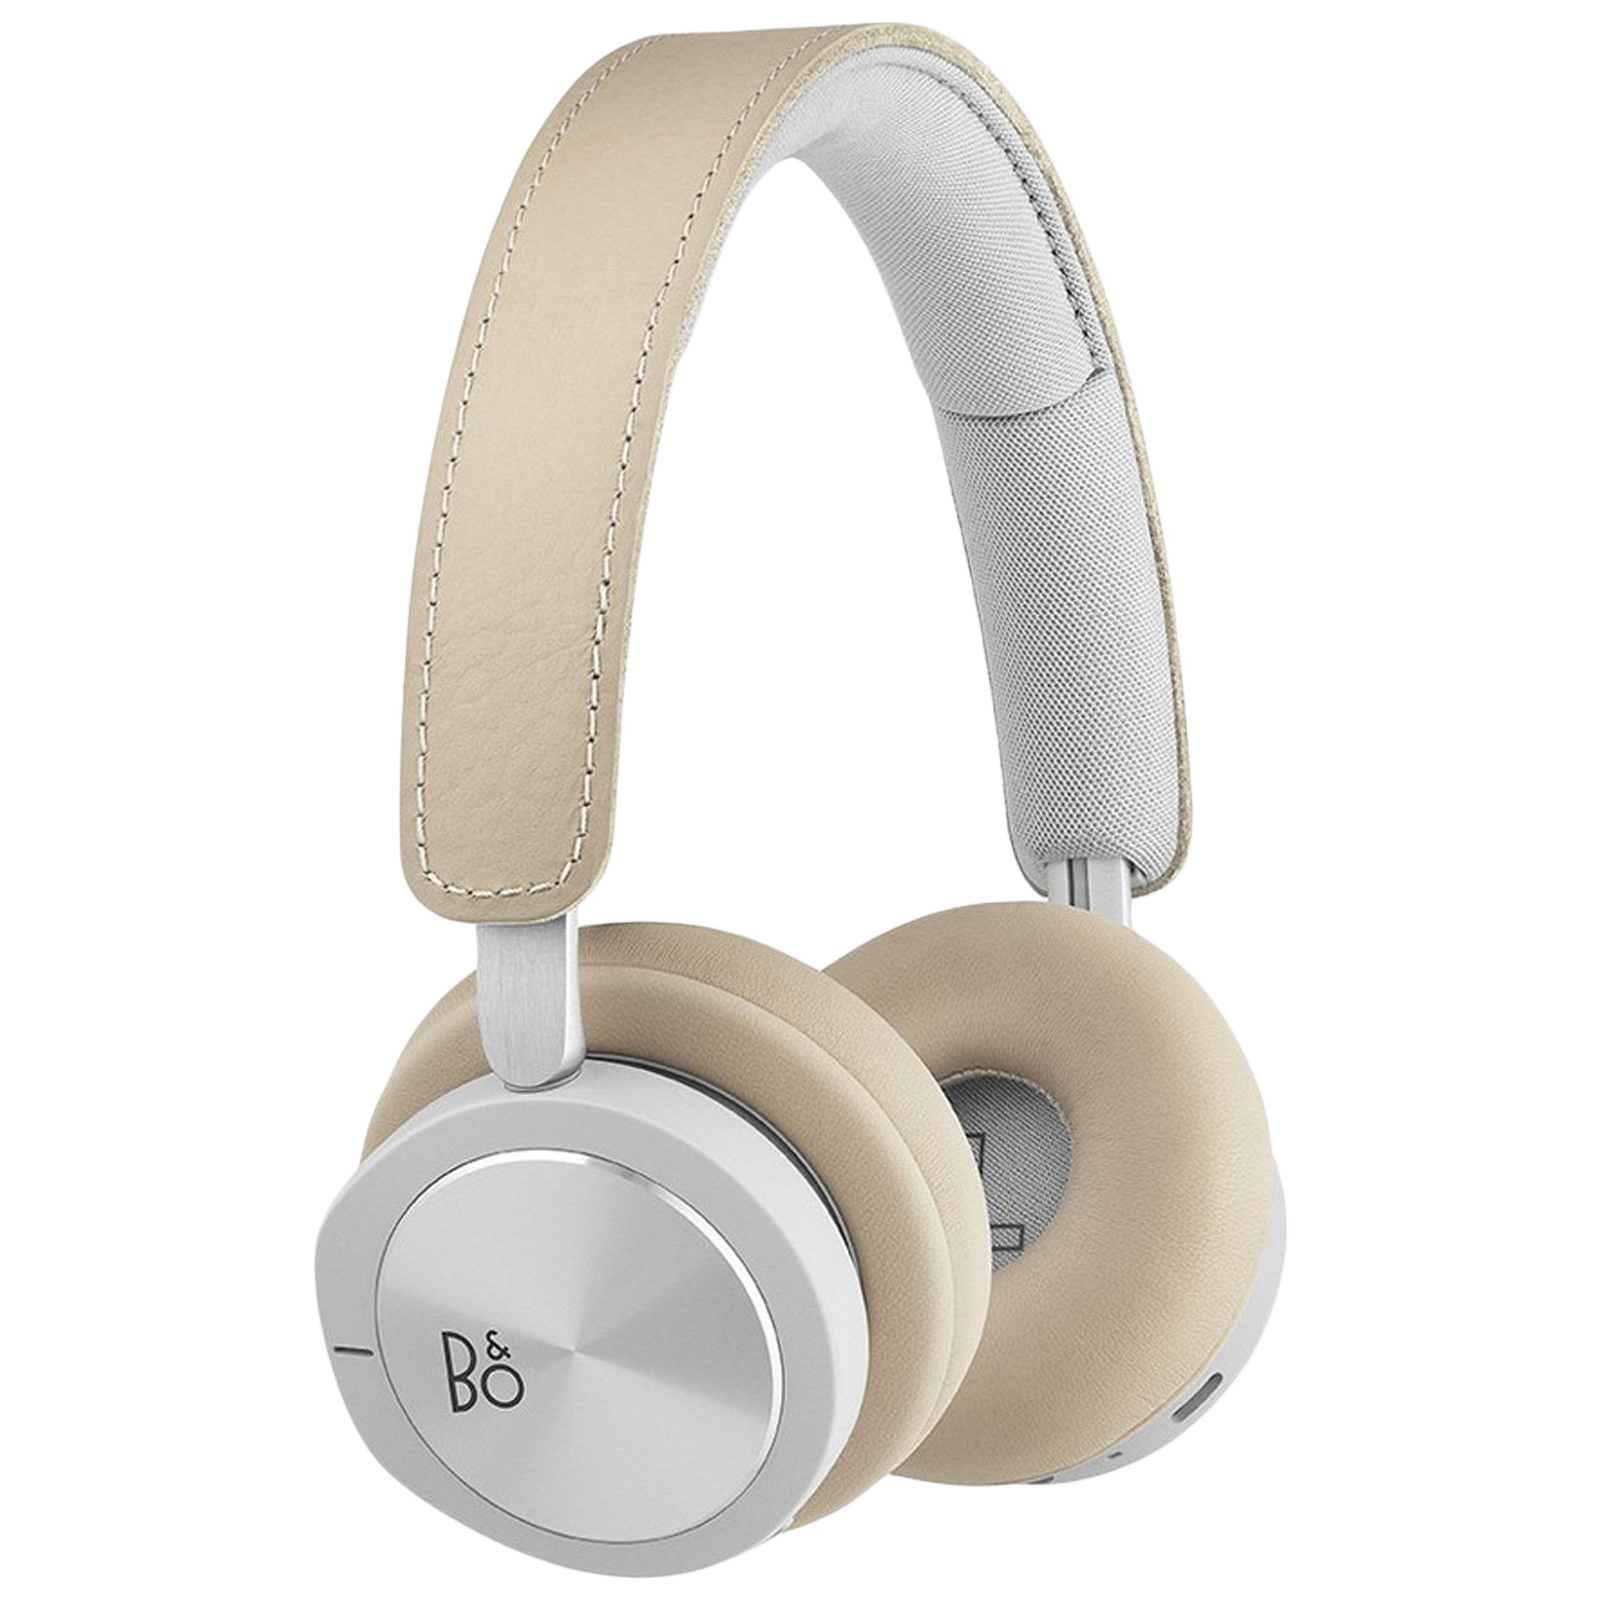 Bang & Olufsen Beoplay H8i On-Ear Active Noise Cancellation Wireless Headphone with Mic (Bluetooth 4.2, Built-in Proximity Sensor, BO-BPH8i-NTL, Natural)_1